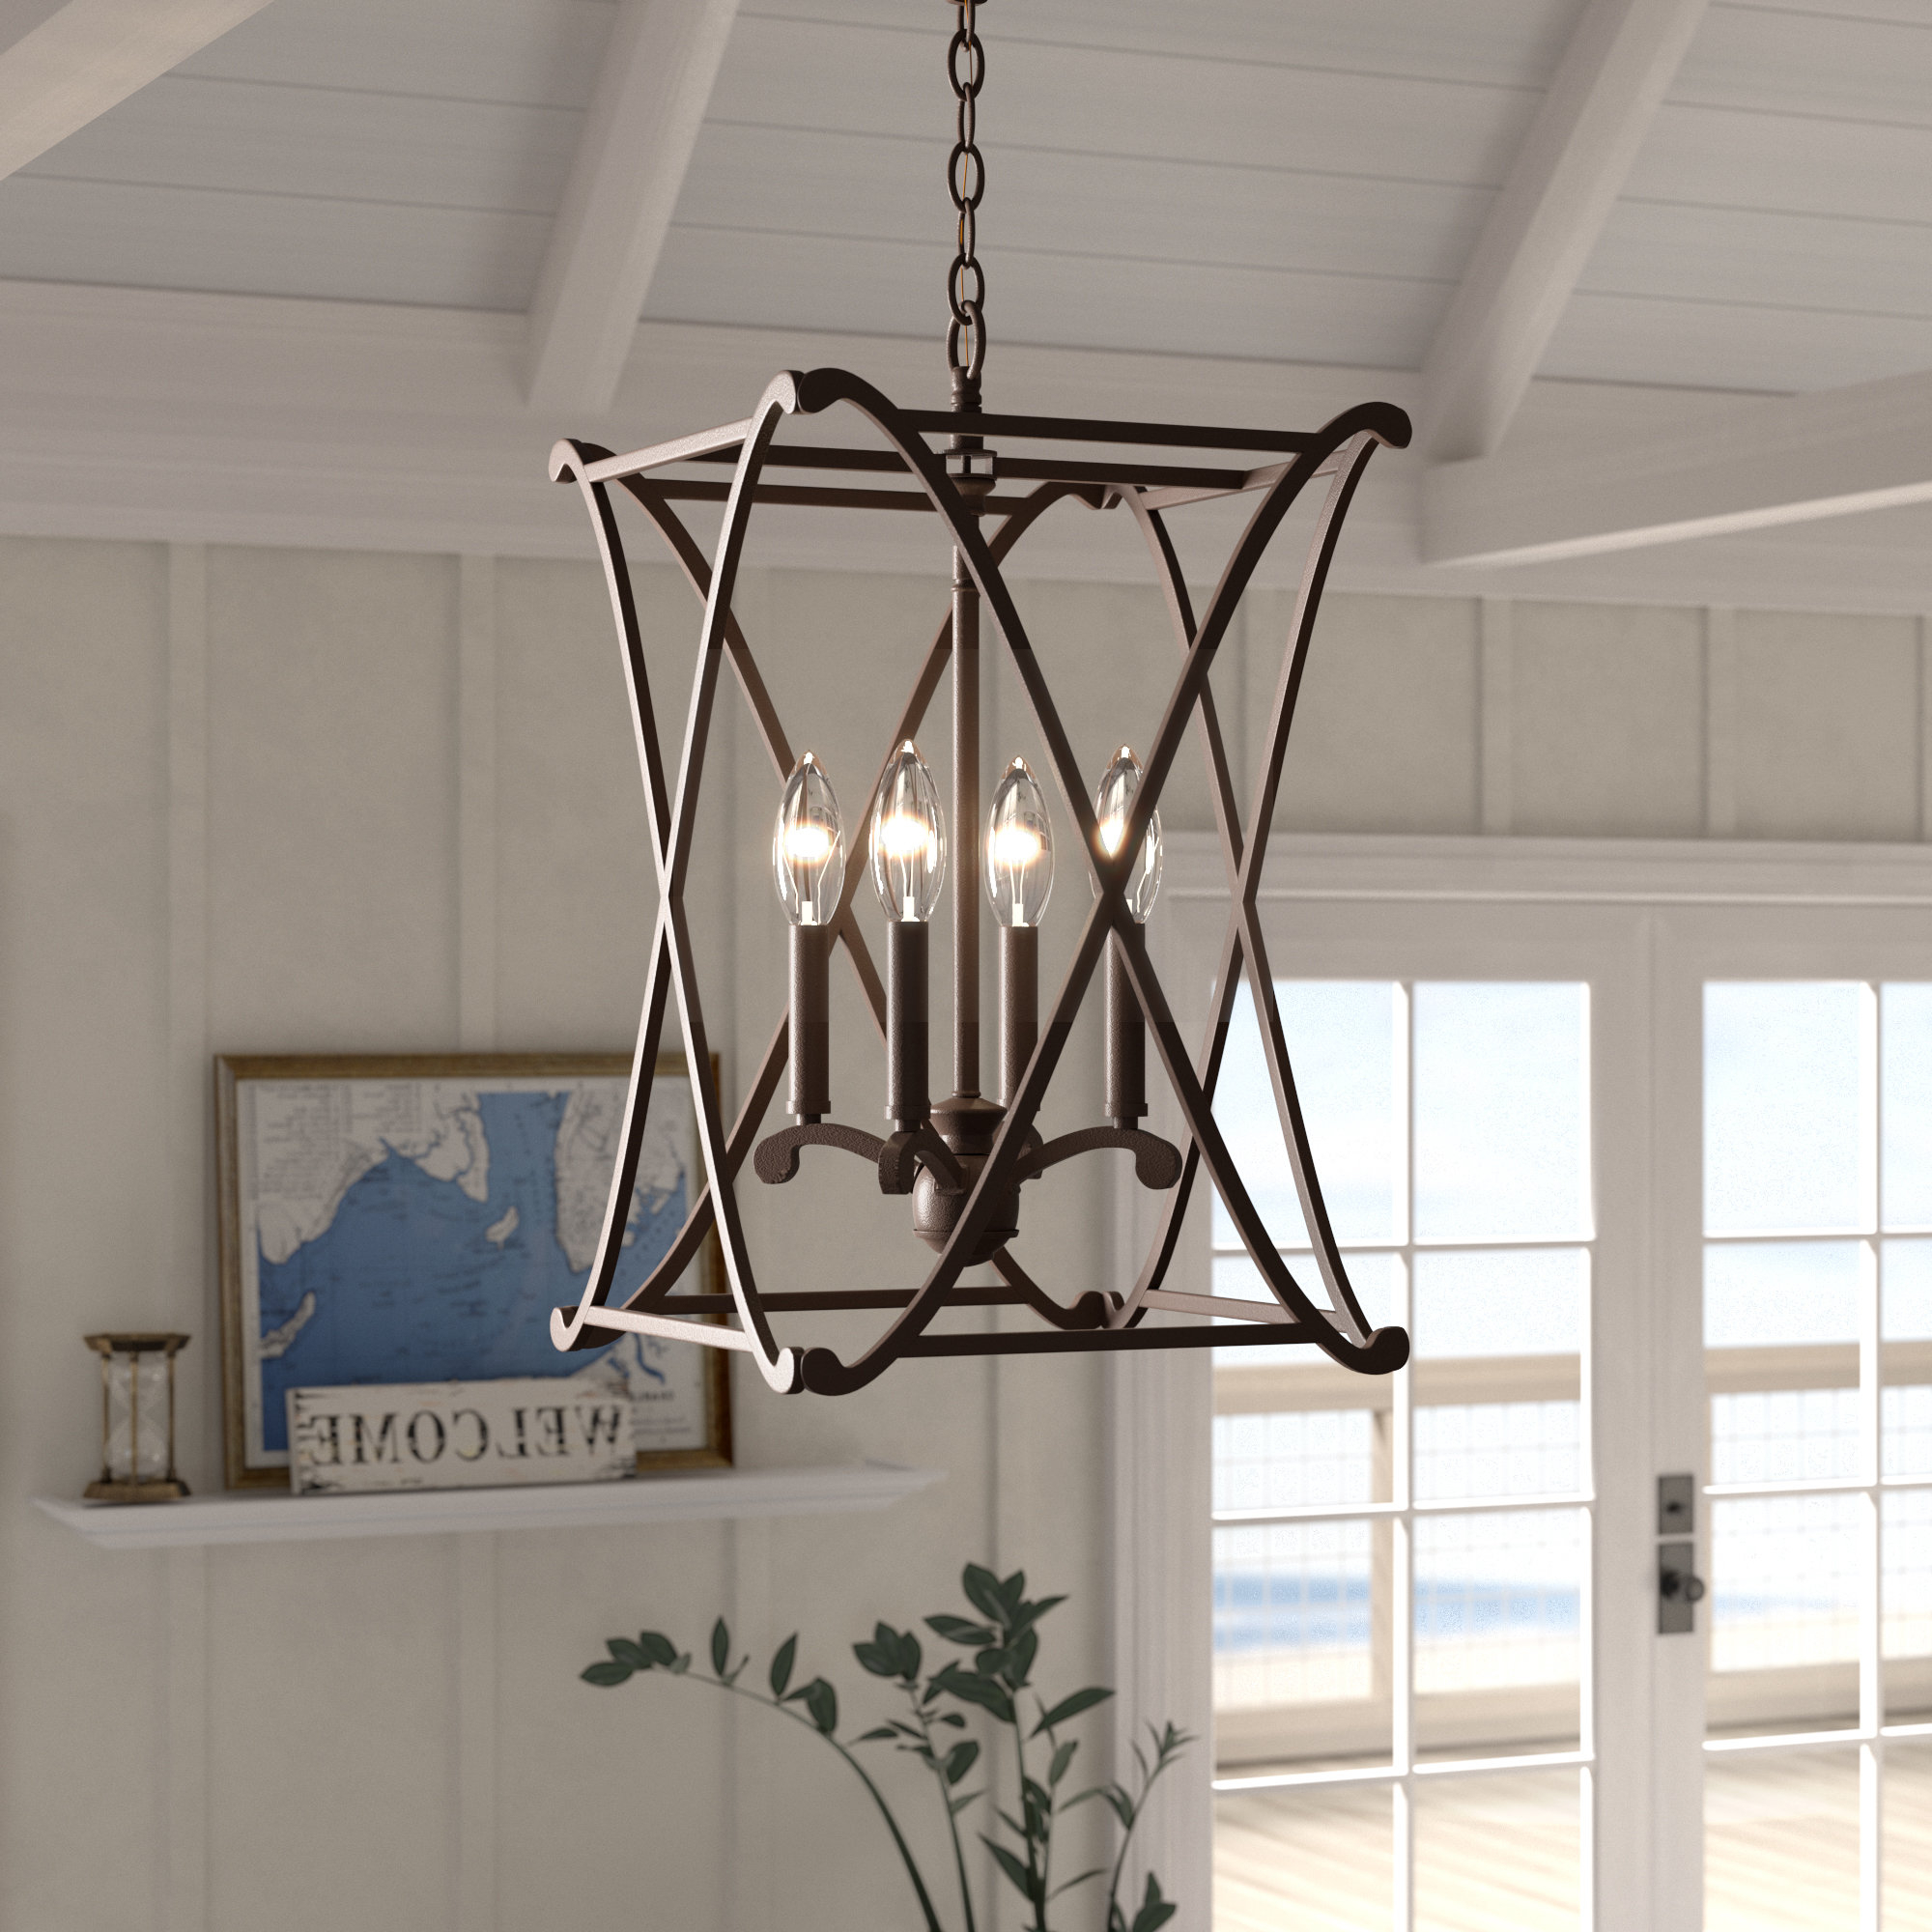 Nisbet 6 Light Lantern Geometric Pendants Throughout Well Known Nisbet 4 Light Lantern Geometric Pendant (View 14 of 20)